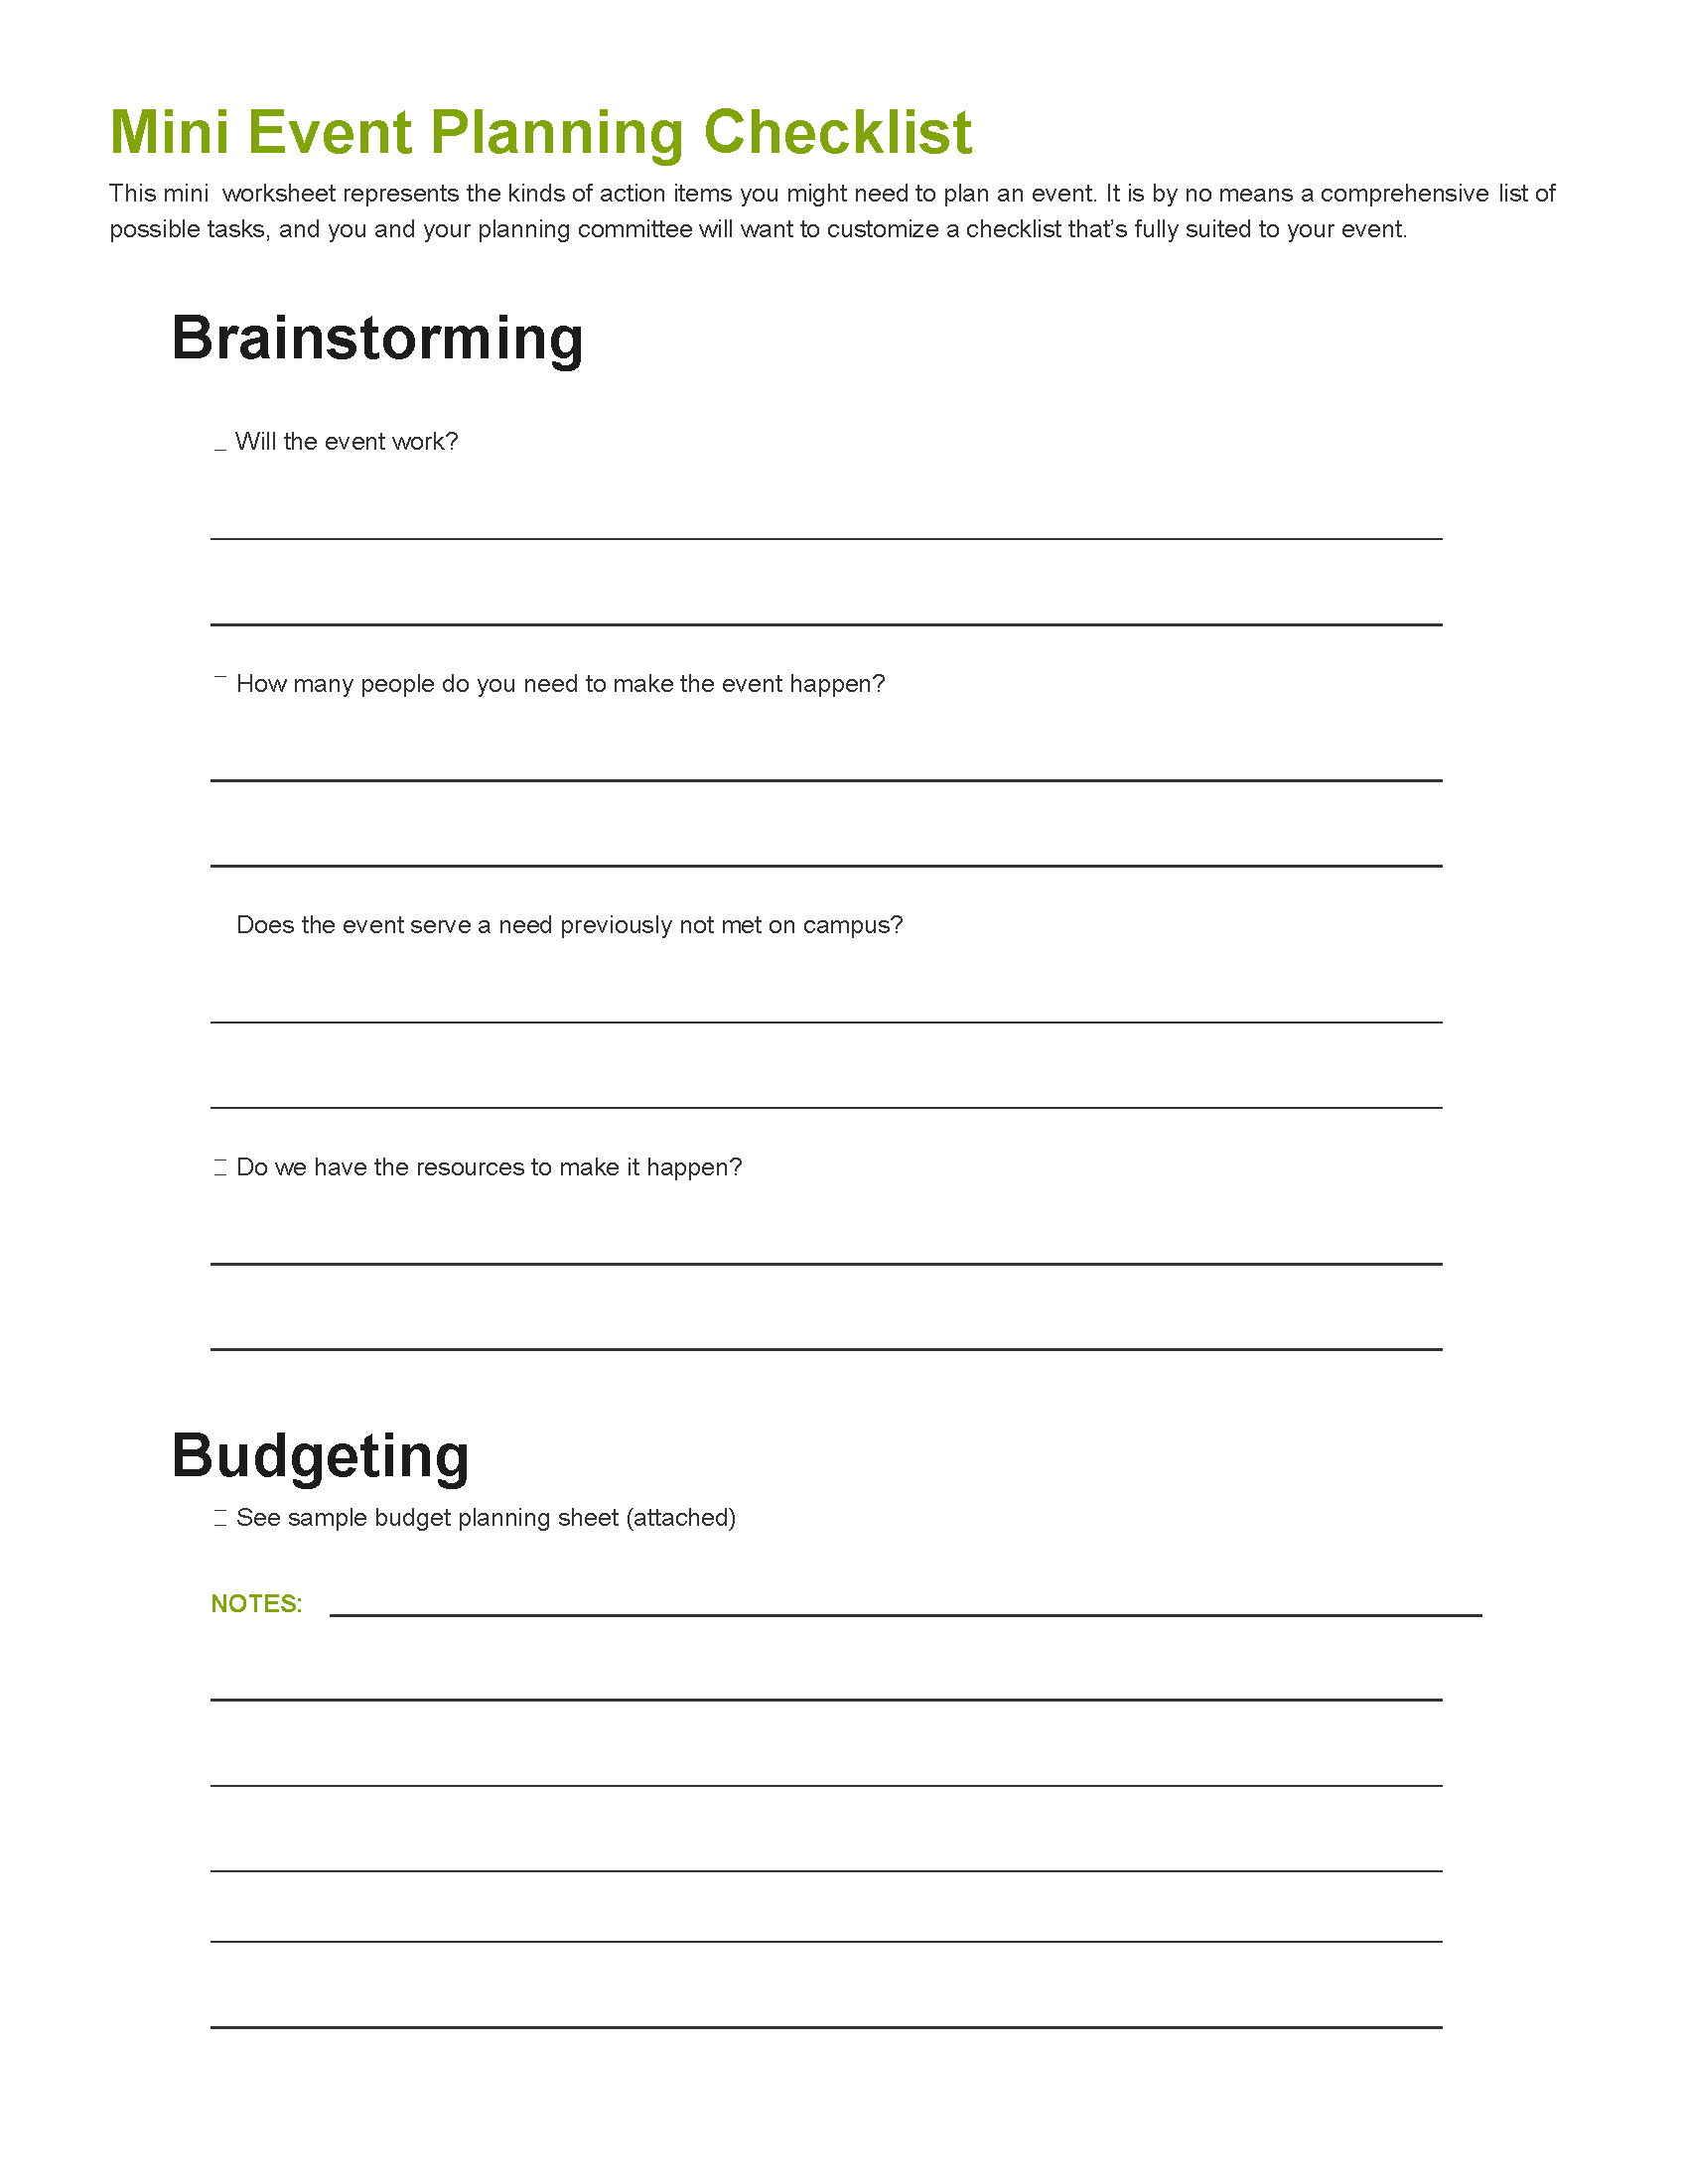 Mini Event Planning Guide Worksheet